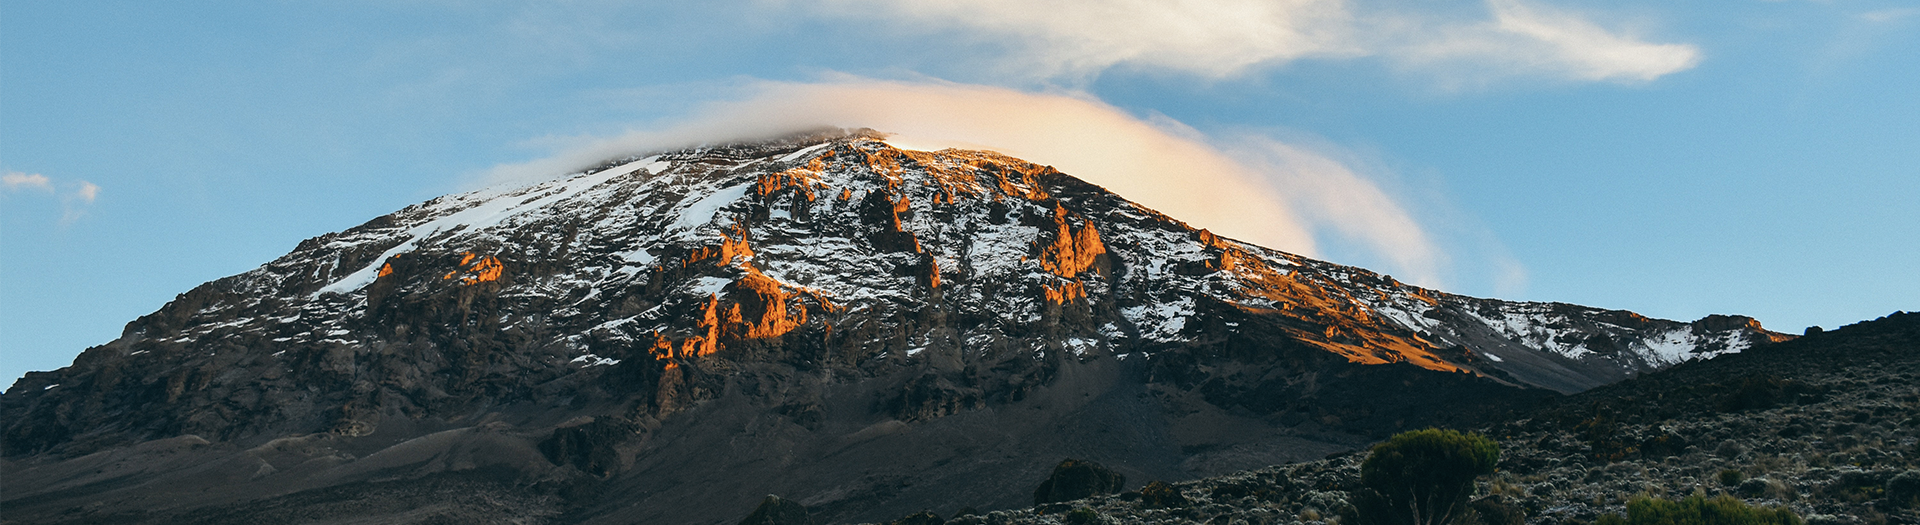 Kilimanjaro by the Machame way